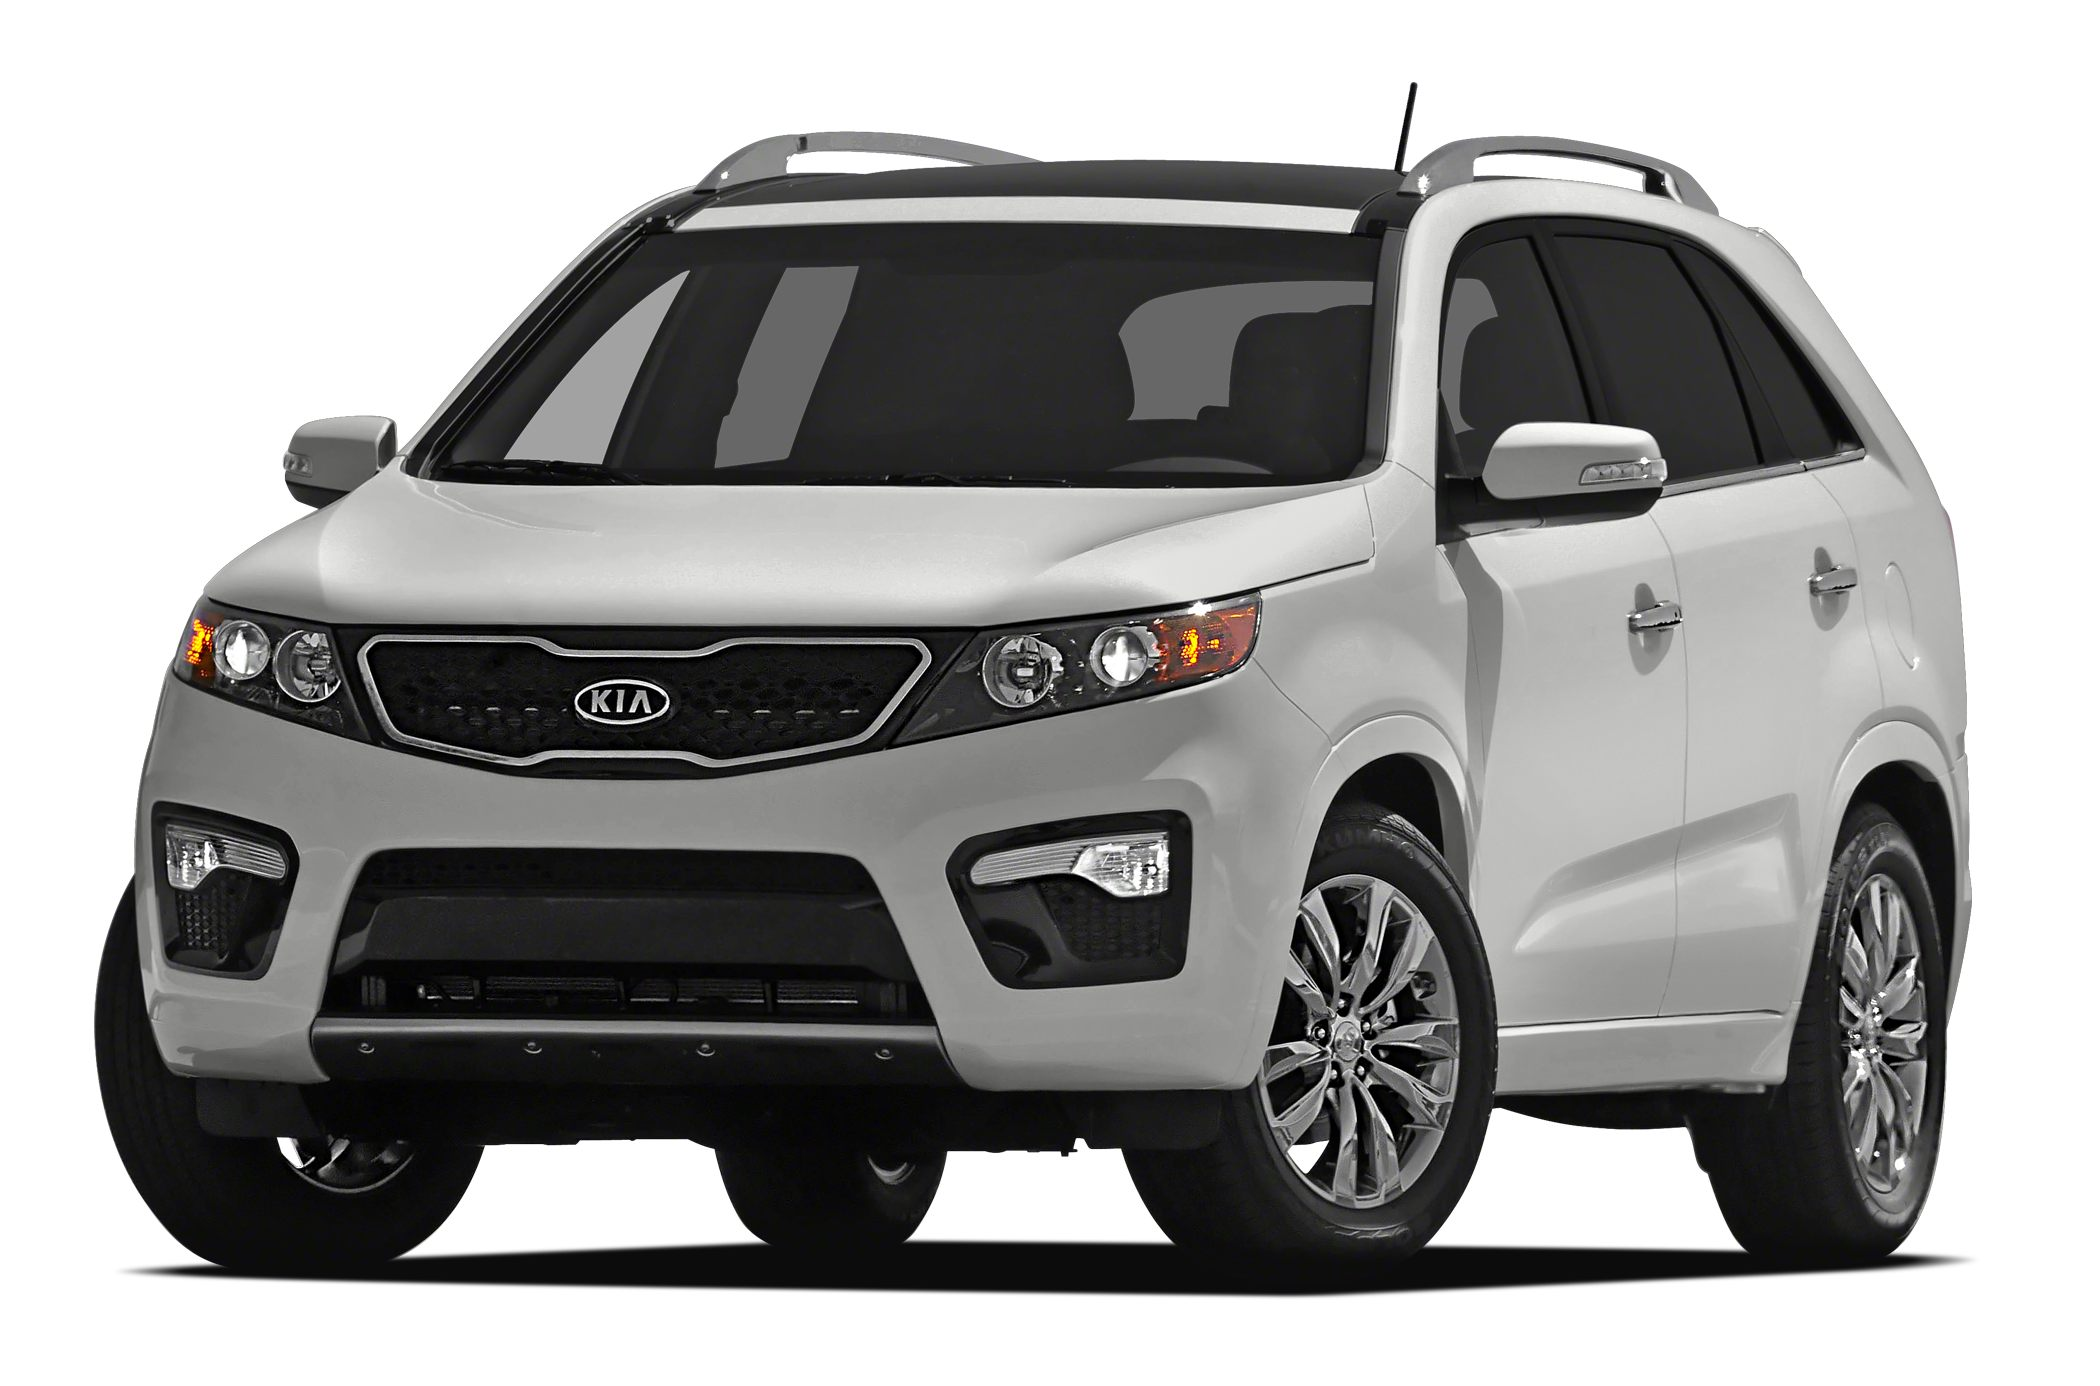 2012 Kia Sorento SX ALL WHEEL DRIVE THIRD ROW SEATING TURBO LEATHER ROOF NAVIGATION BACKUP C